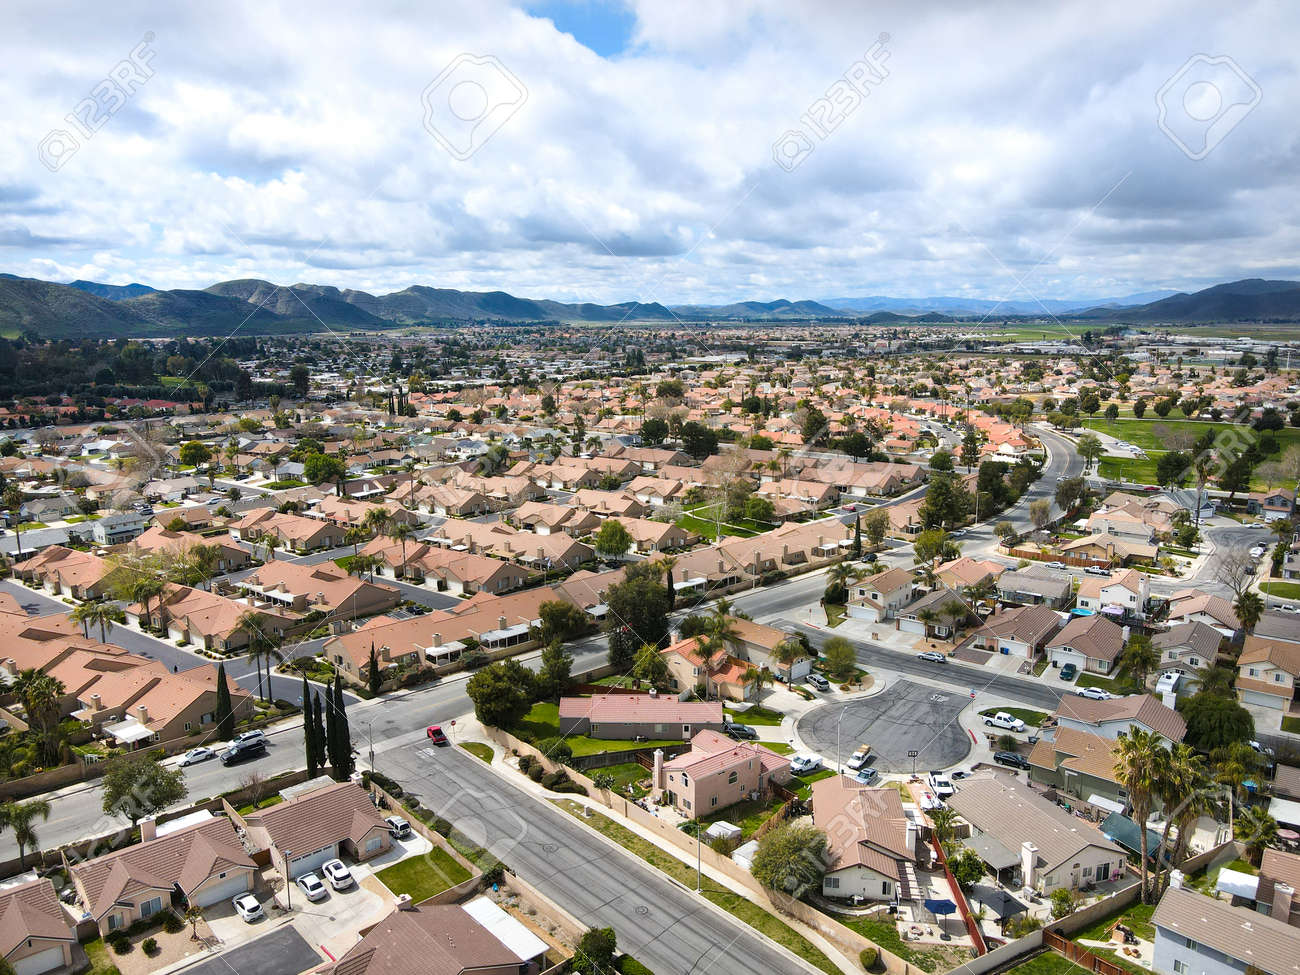 Aerial view of Hemet city in the San Jacinto Valley in Riverside County, California, USA. - 168023553